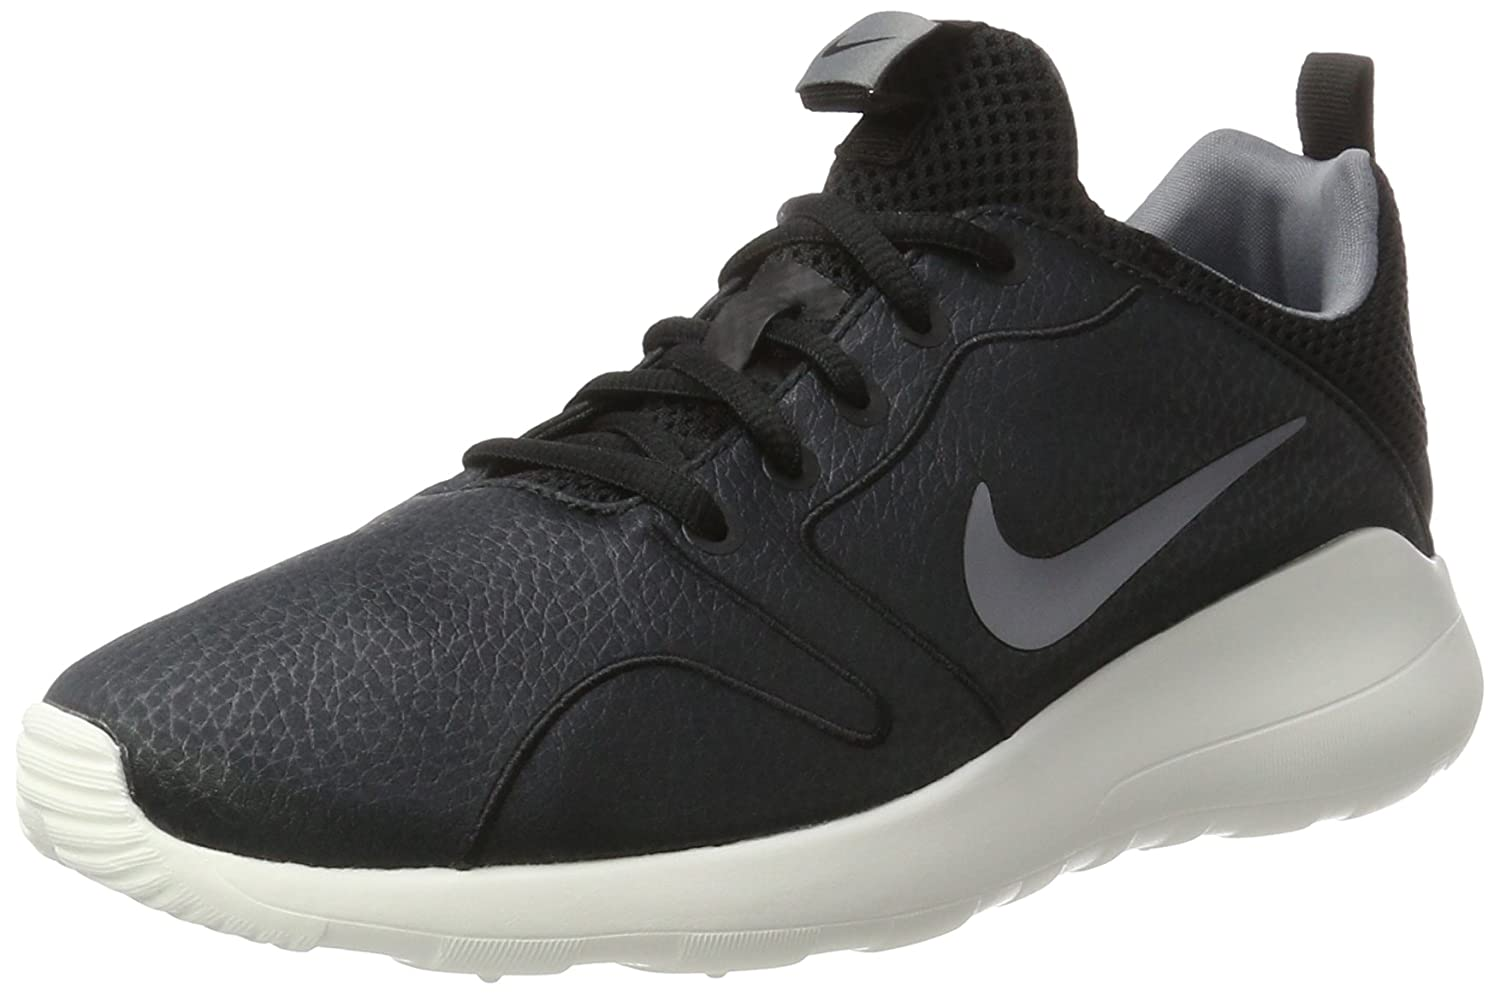 promo code 38eab 0c54b Amazon.com  Nike Mens Kaishi 2.0 SE Black Grey Mesh Trainers 10 US   Fashion Sneakers